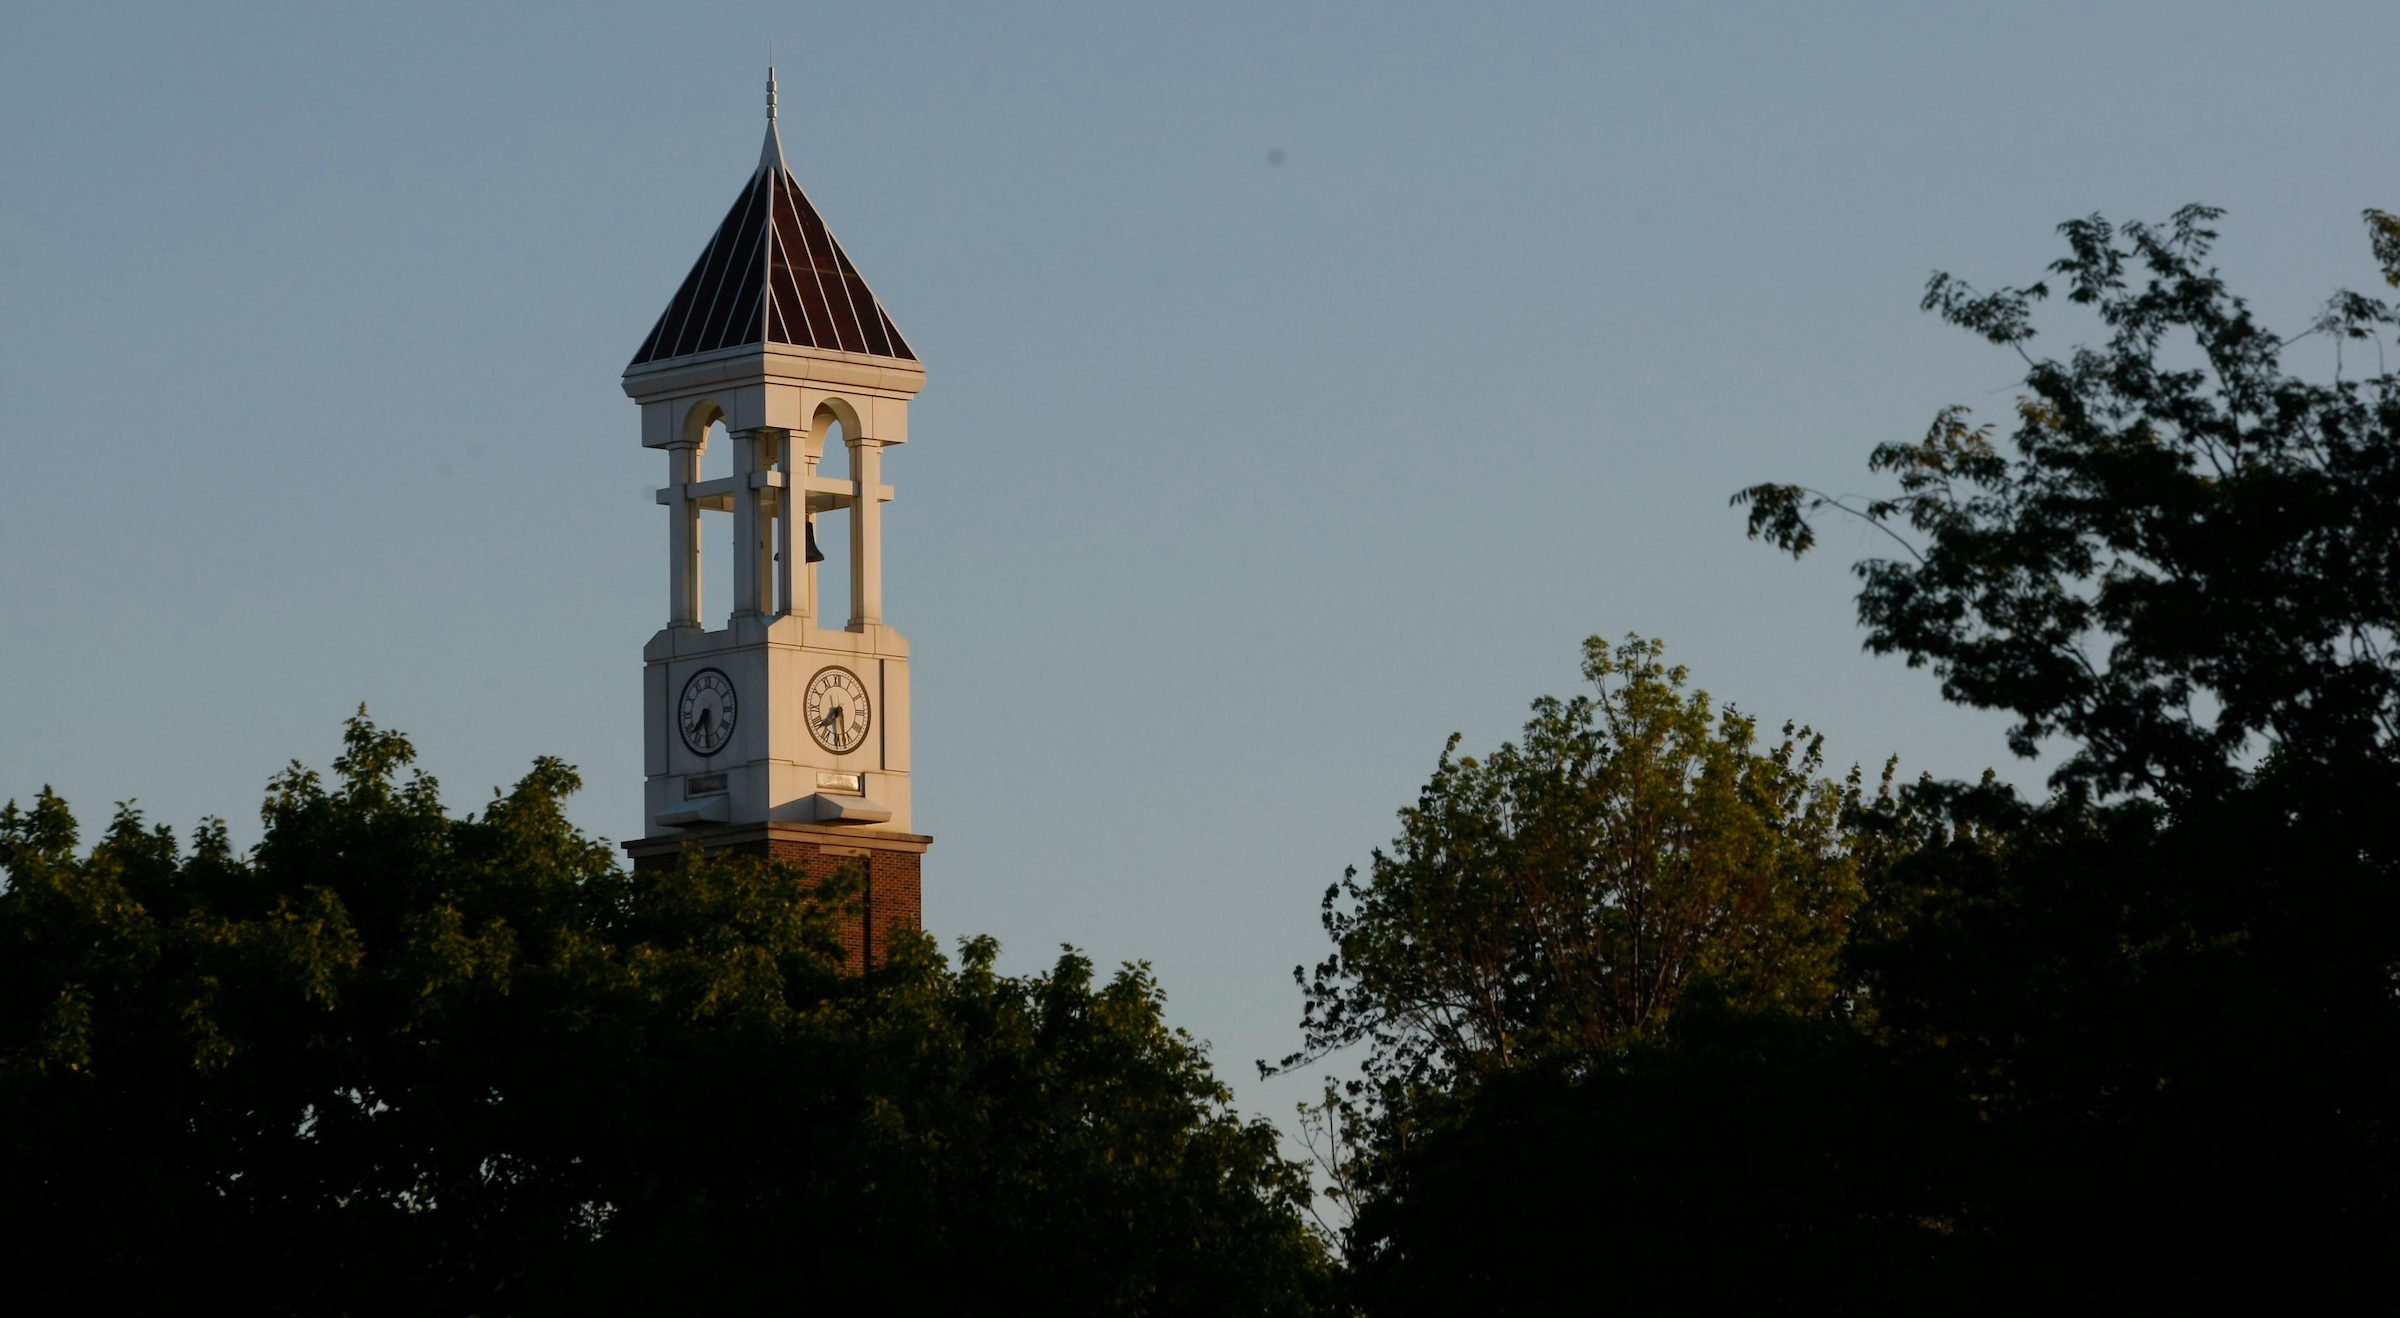 Purdue clock tower